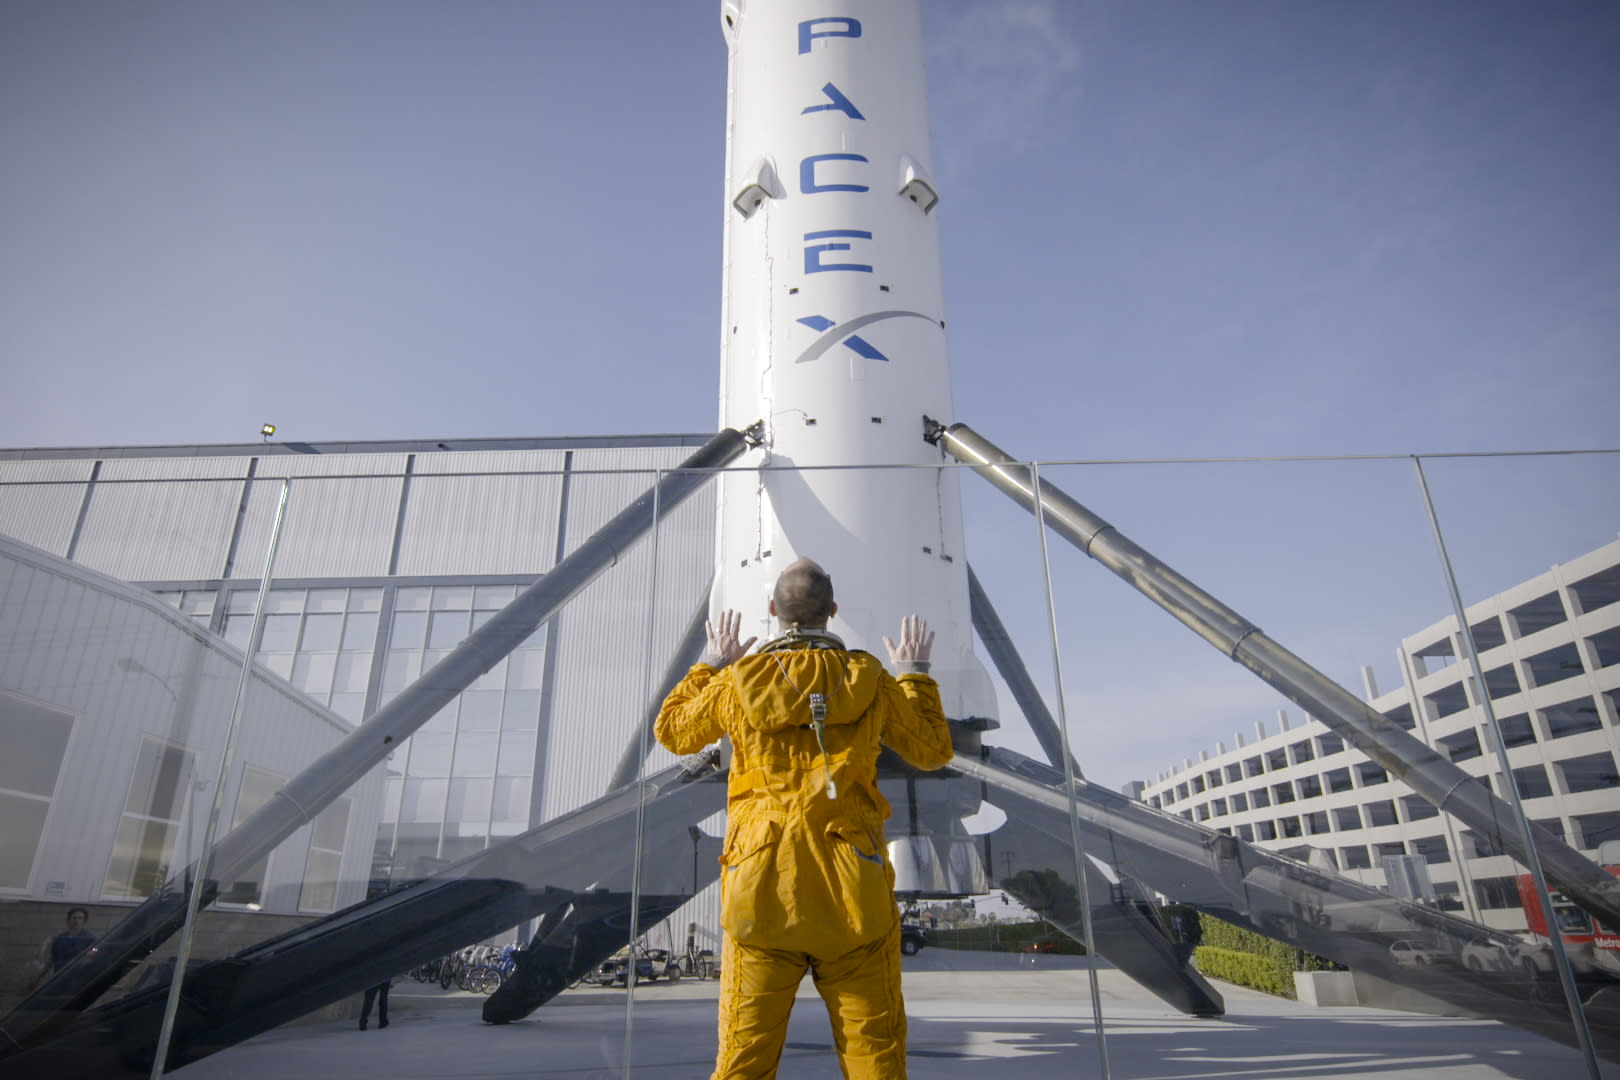 spacex may 19 - HD1500×1000